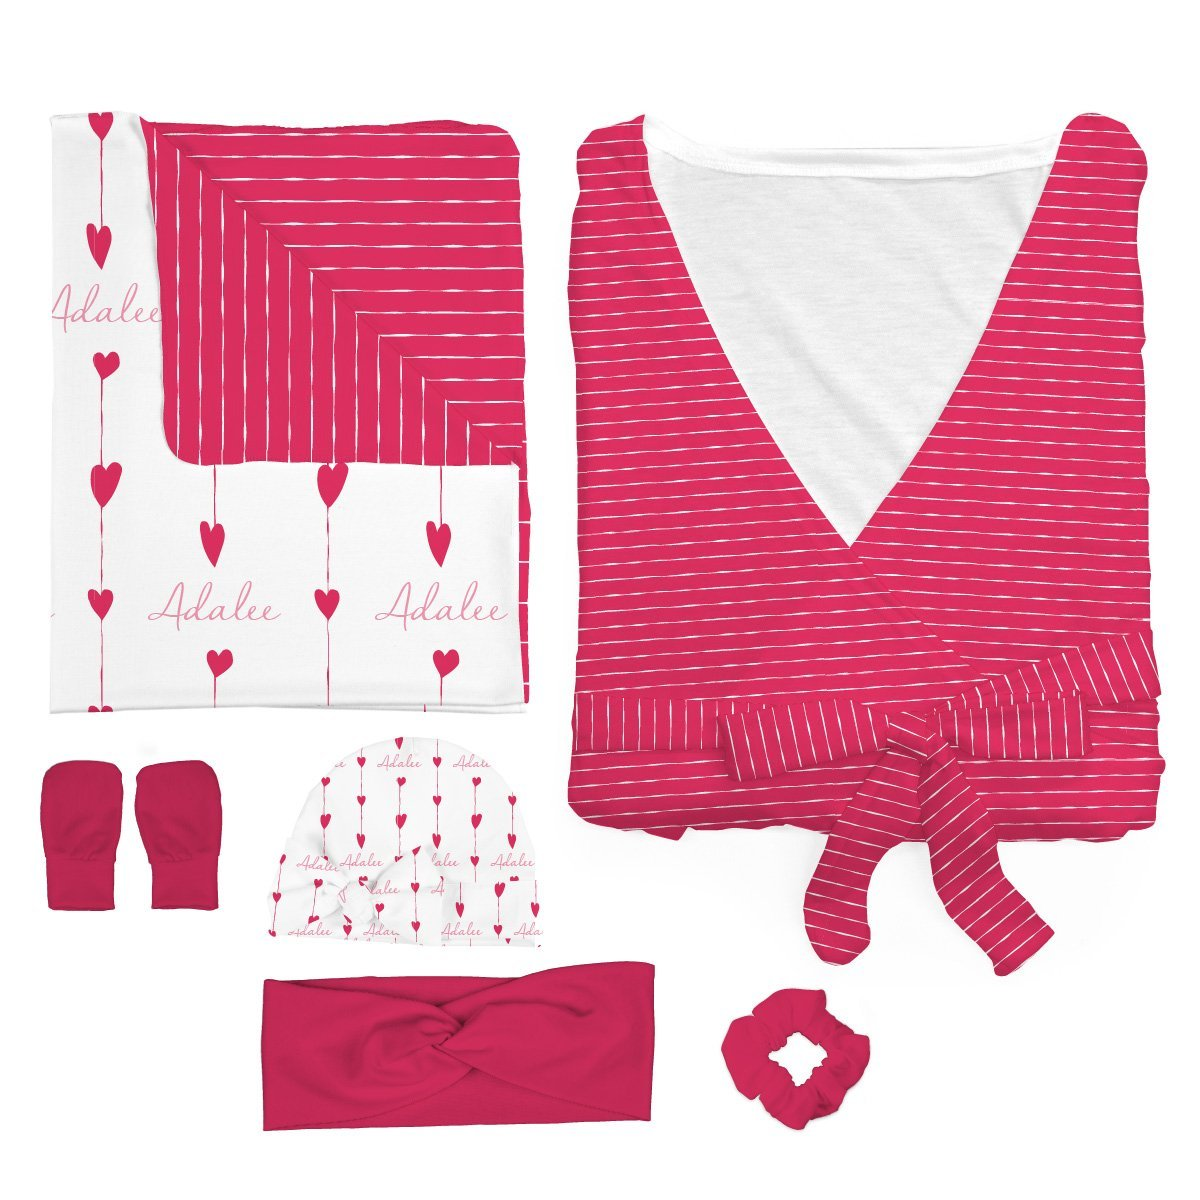 Adalee's Valentine Hearts | Mommy & Me Bundle